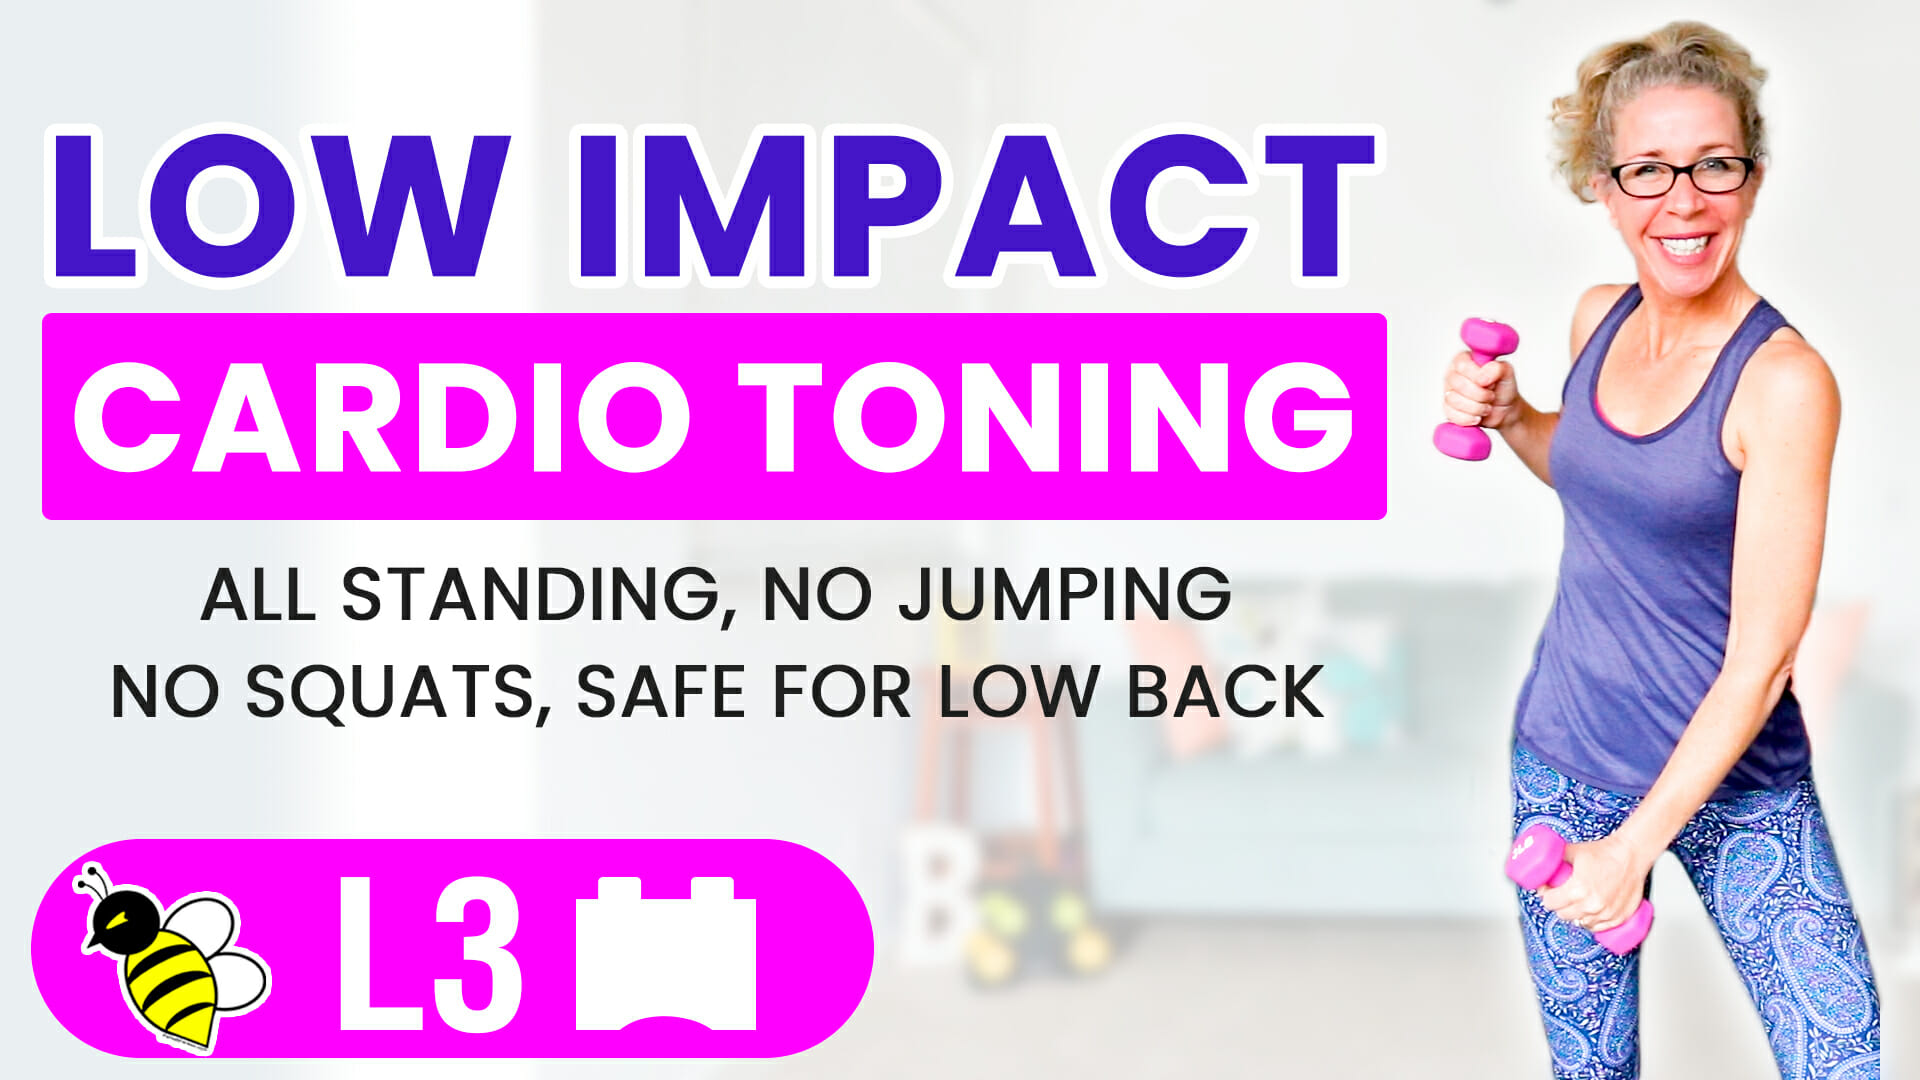 Low Impact CARDIO TONING Tabata 10 minute ALL standing, NO jumping, NO squatting workout